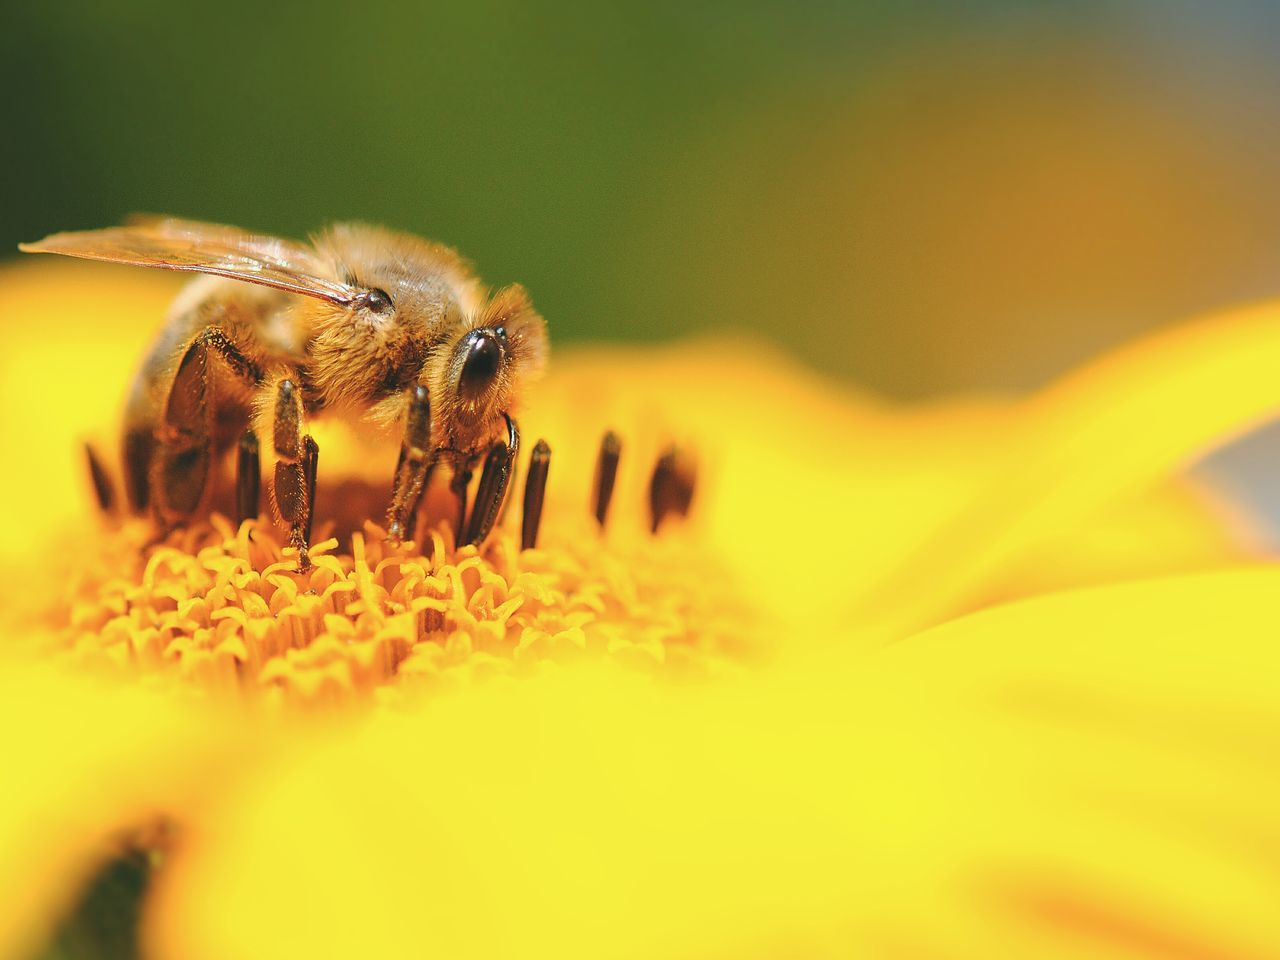 Bee Apis Insect Insect Photography Macro Insects Makro Makro_collection Yellow Flower Catch The Moment